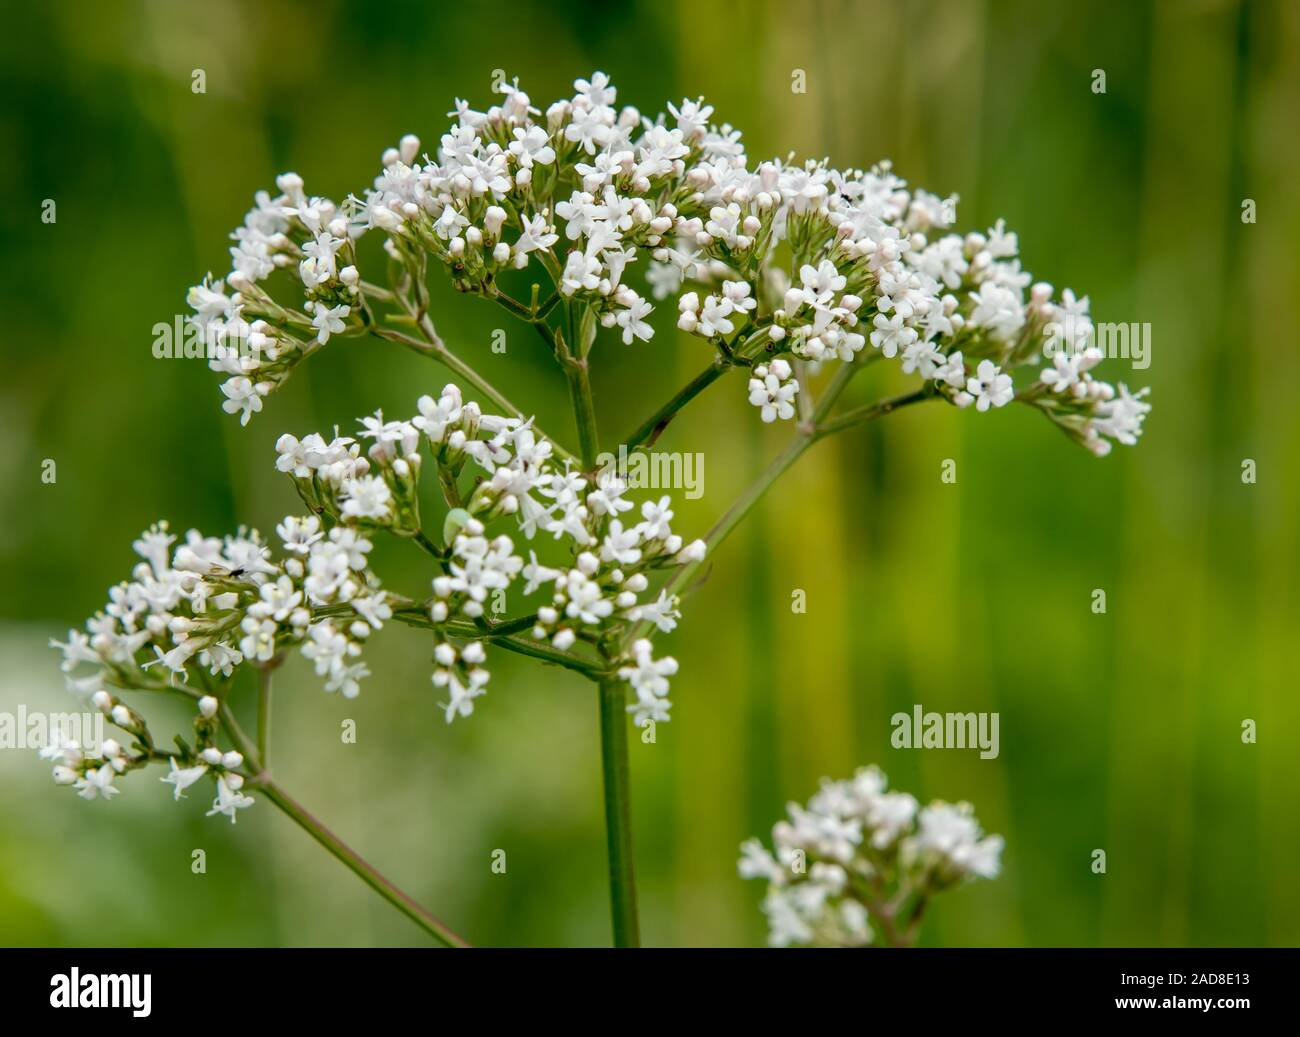 White Bloossom, undefined  plant Stock Photo